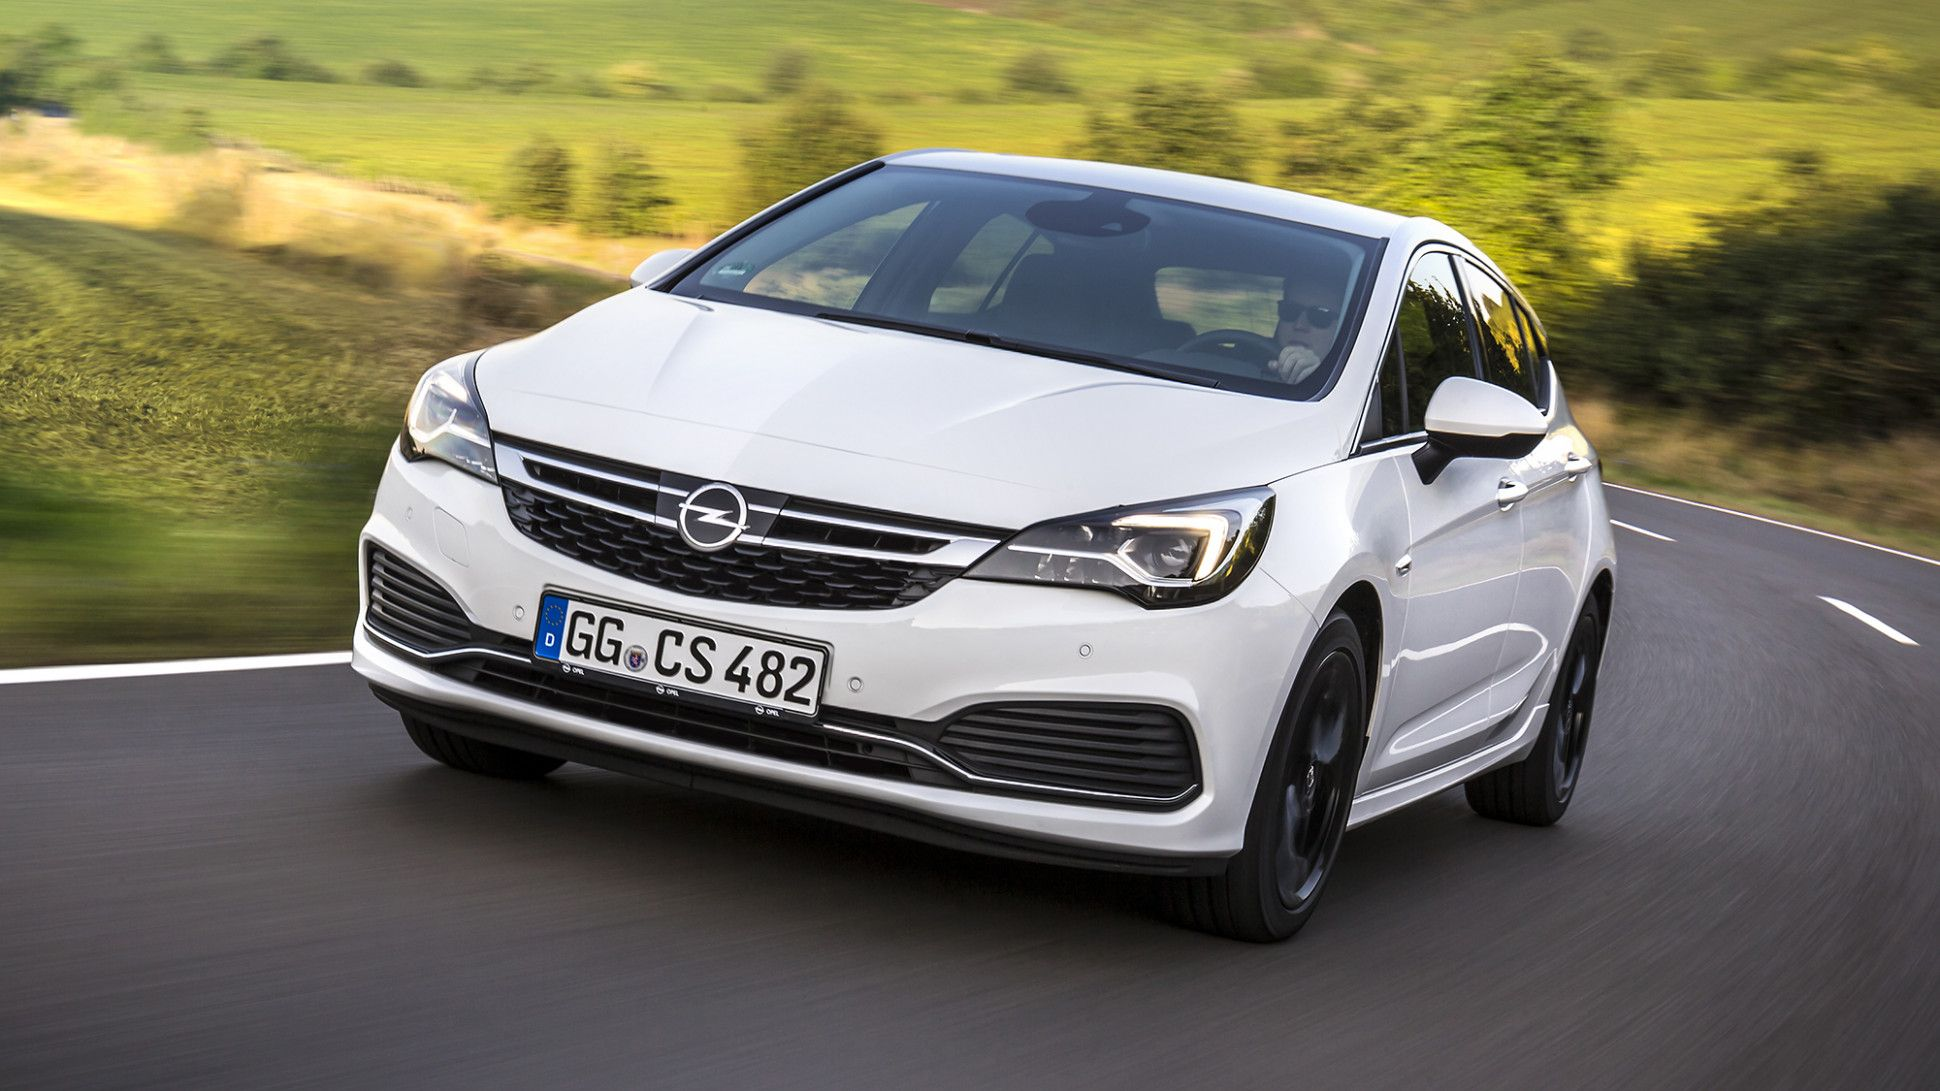 Opel Astra 2020 White Price In 2020 Opel Vauxhall New Cars